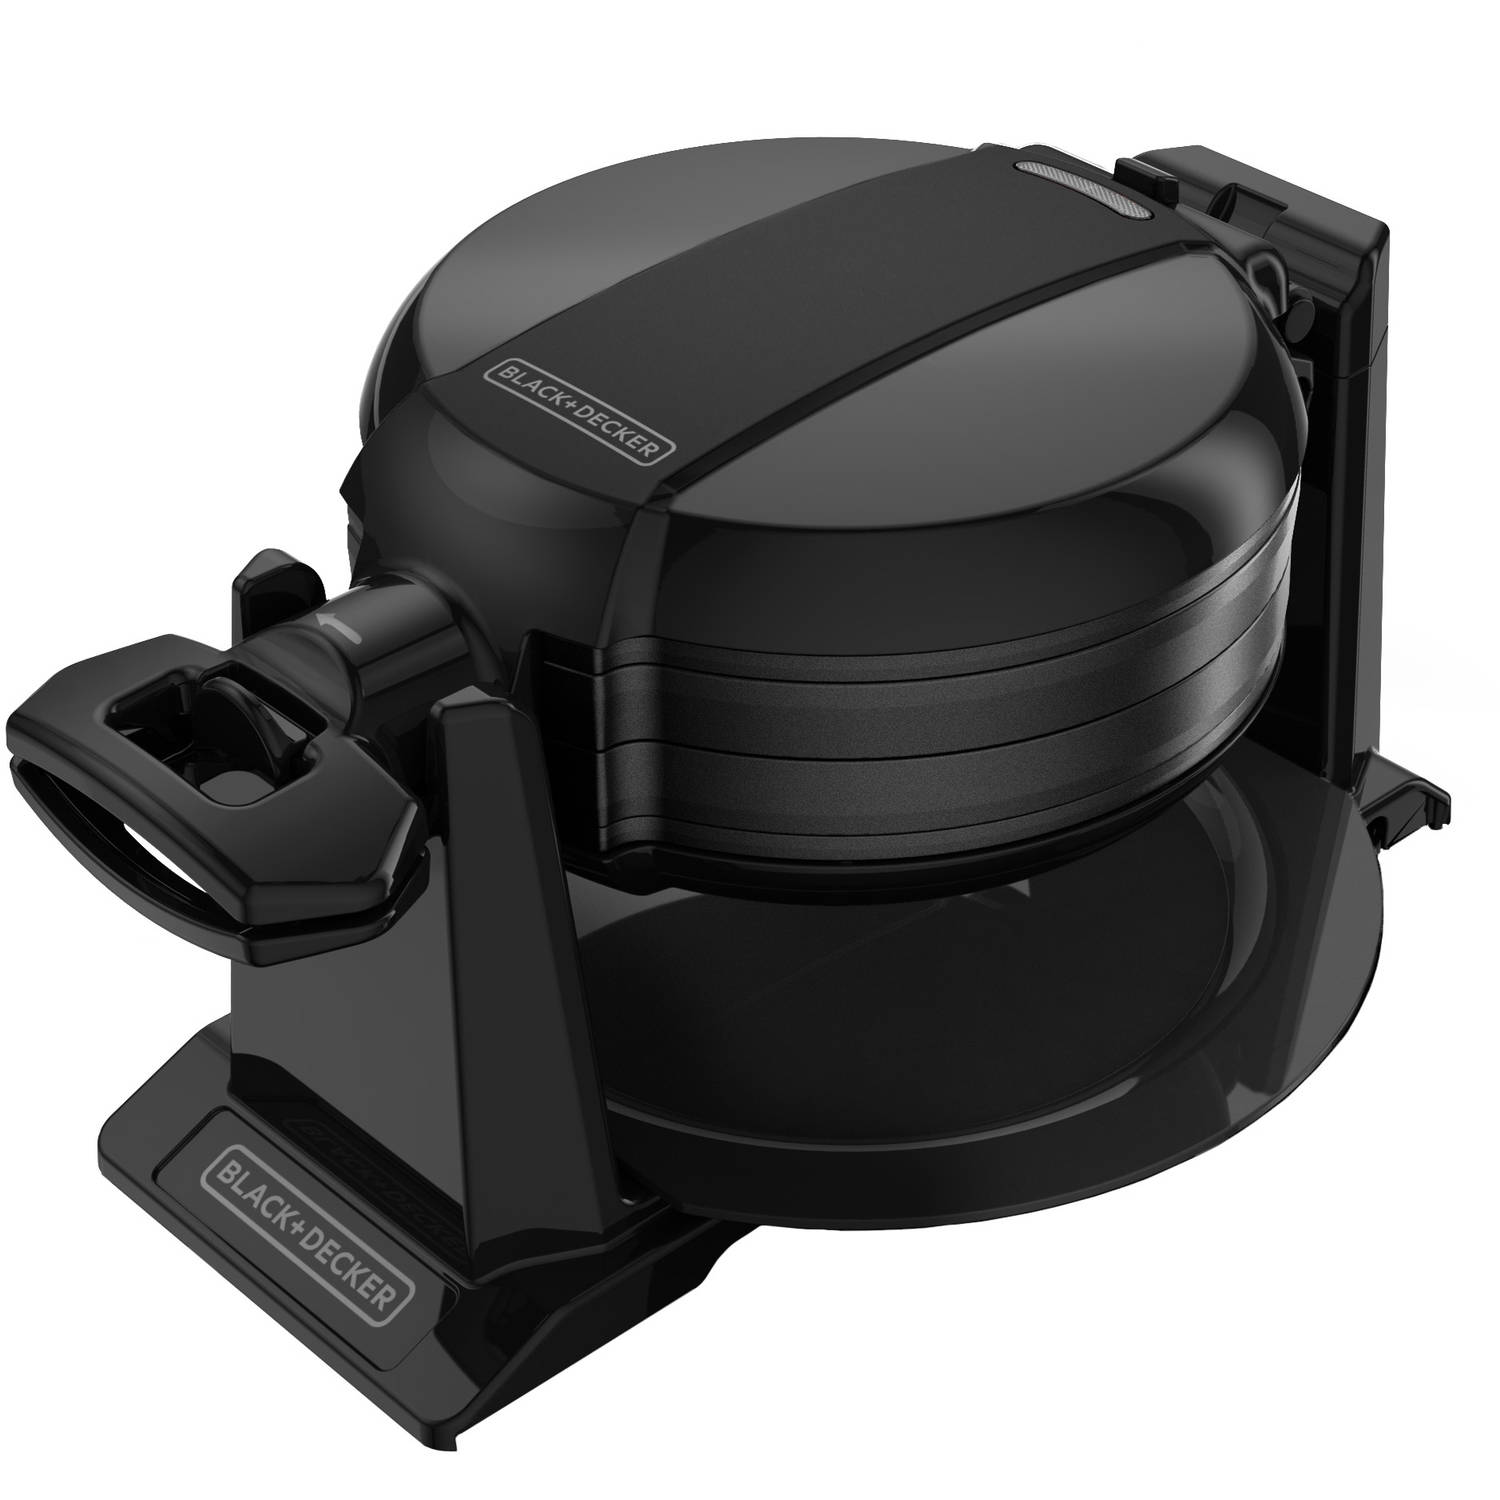 BLACK+DECKER Double Flip Waffle Maker, Non-Stick,  WMD200B